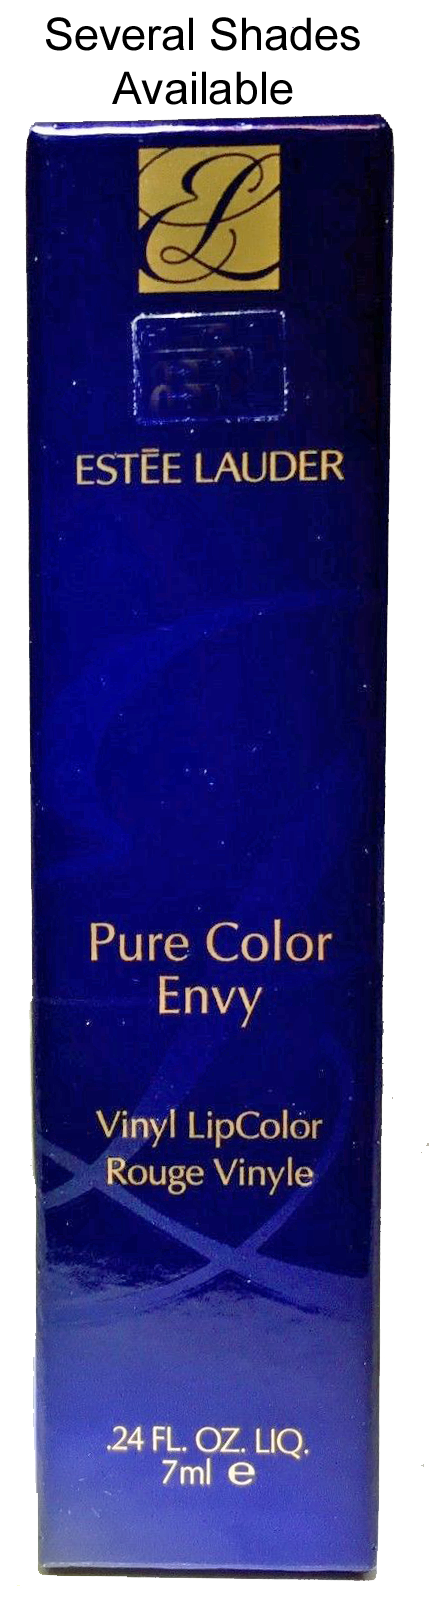 Estee Lauder Pure Color Envy Vinyl LipColor Lip Gloss .24 oz -Several Shades 14706